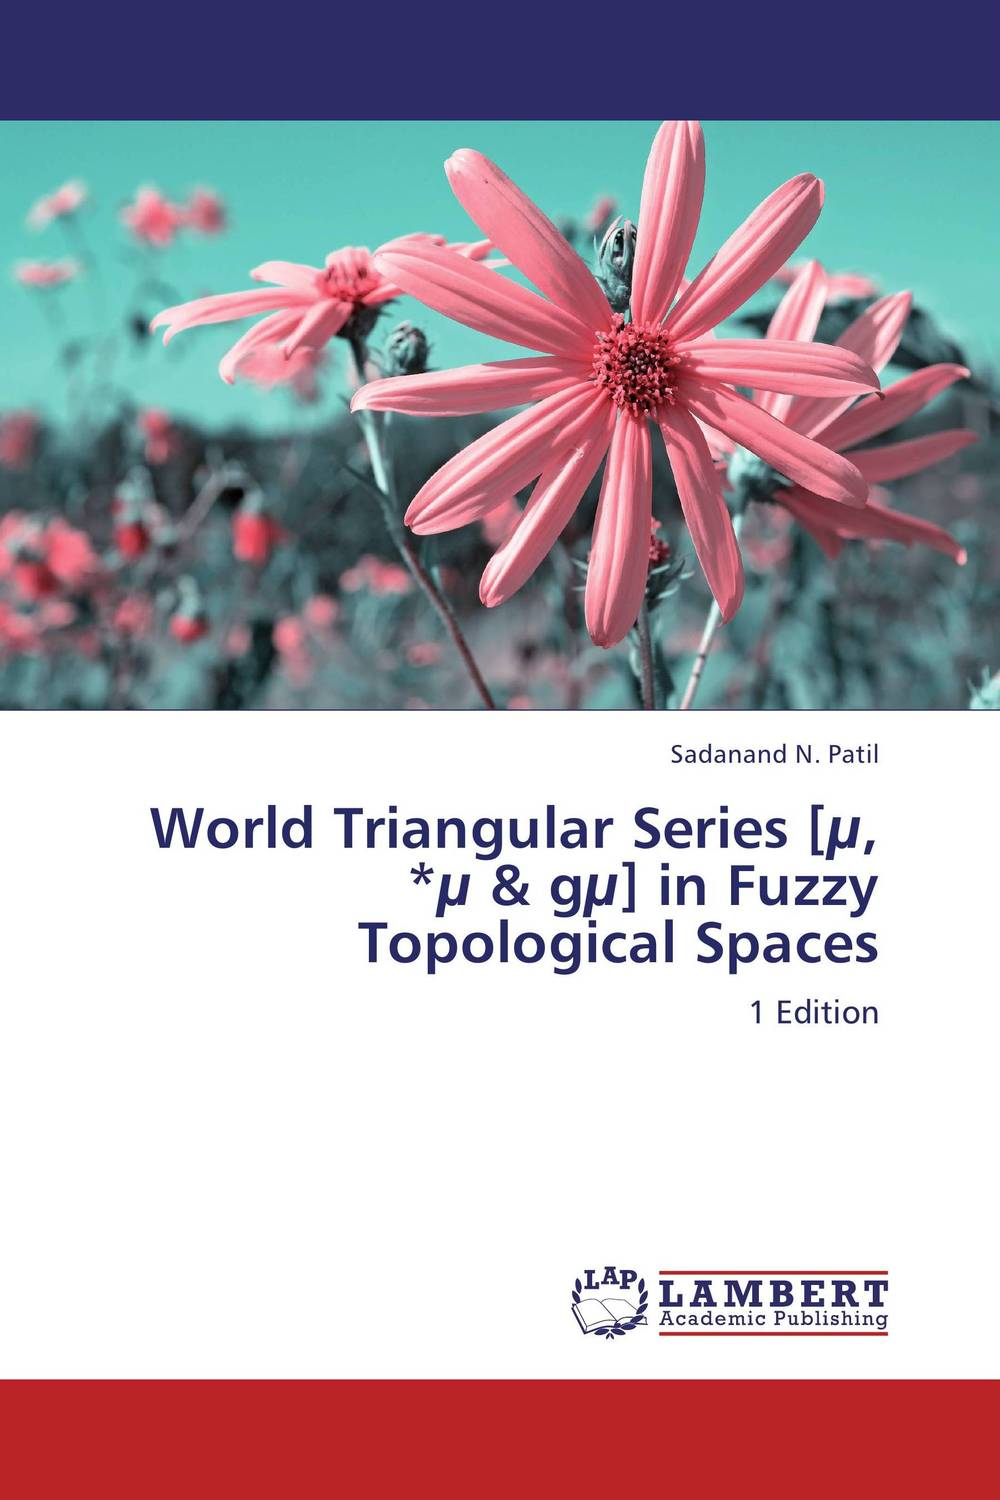 World Triangular Series [µ, *µ & gµ] in Fuzzy Topological Spaces женская футболка lol t womans slim fit lol 3038067